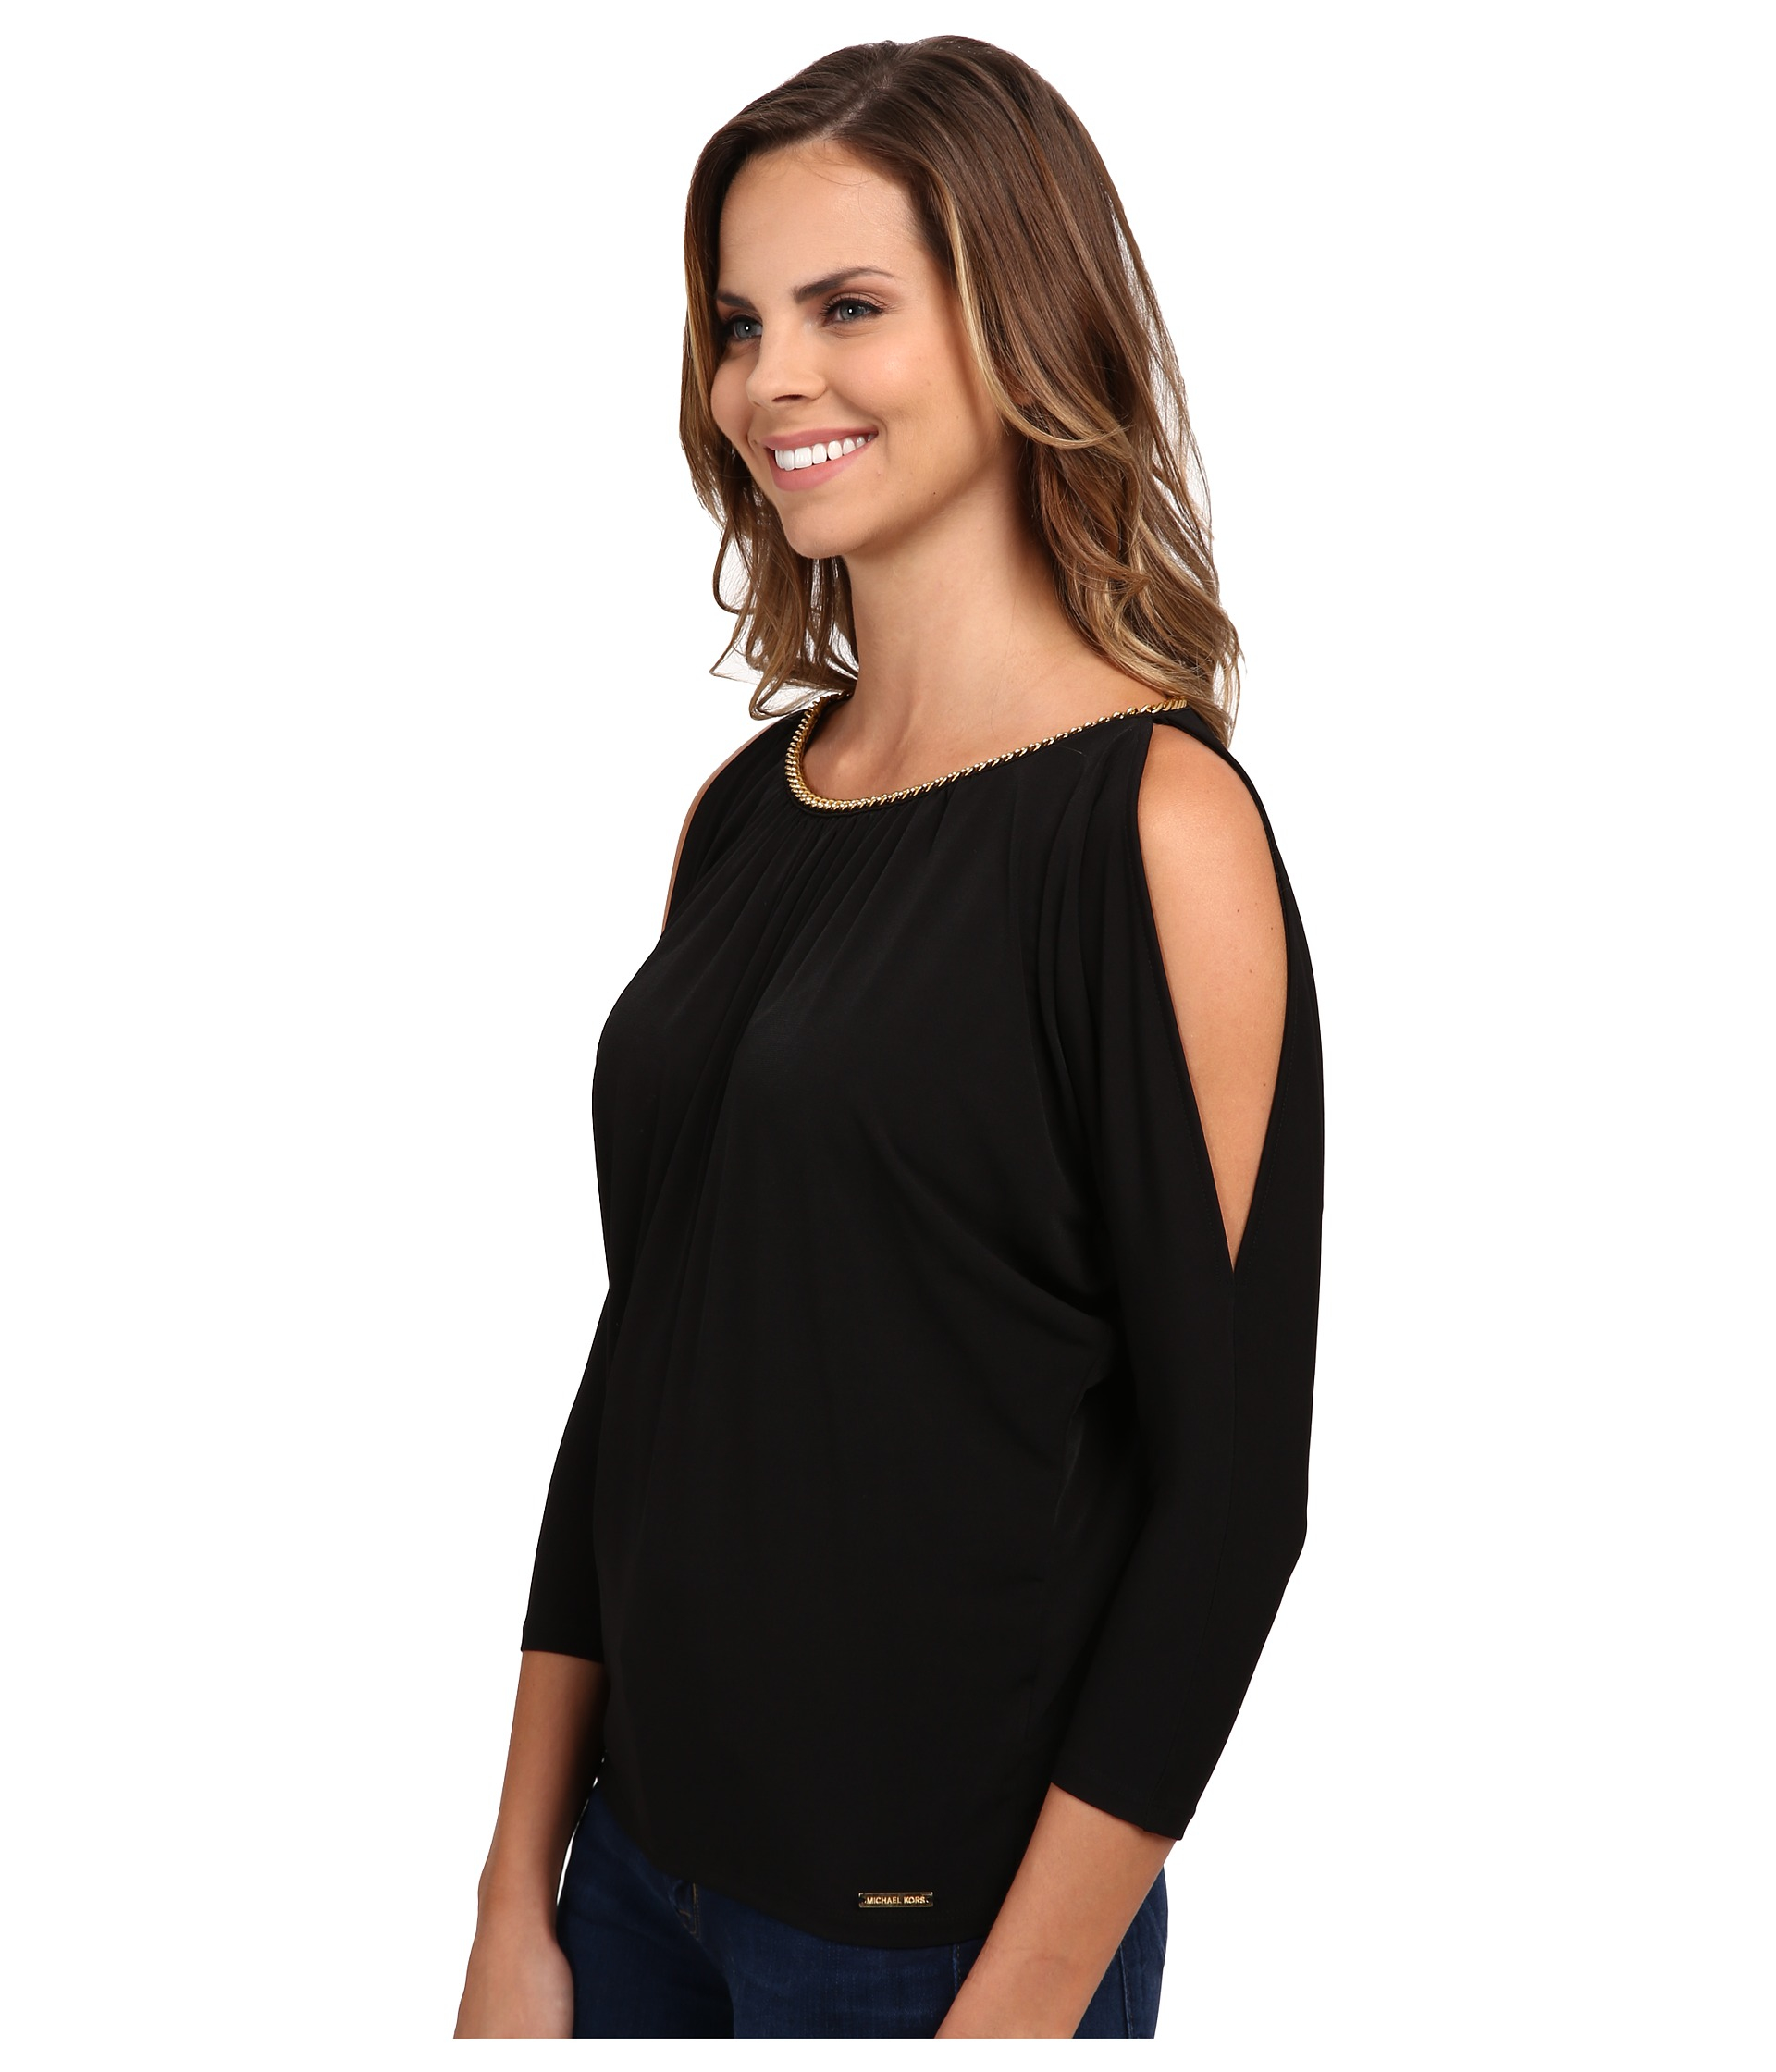 b681c08f78bae4 usa lyst michael michael kors chain neck cold shoulder top in black 026c2  45d0d